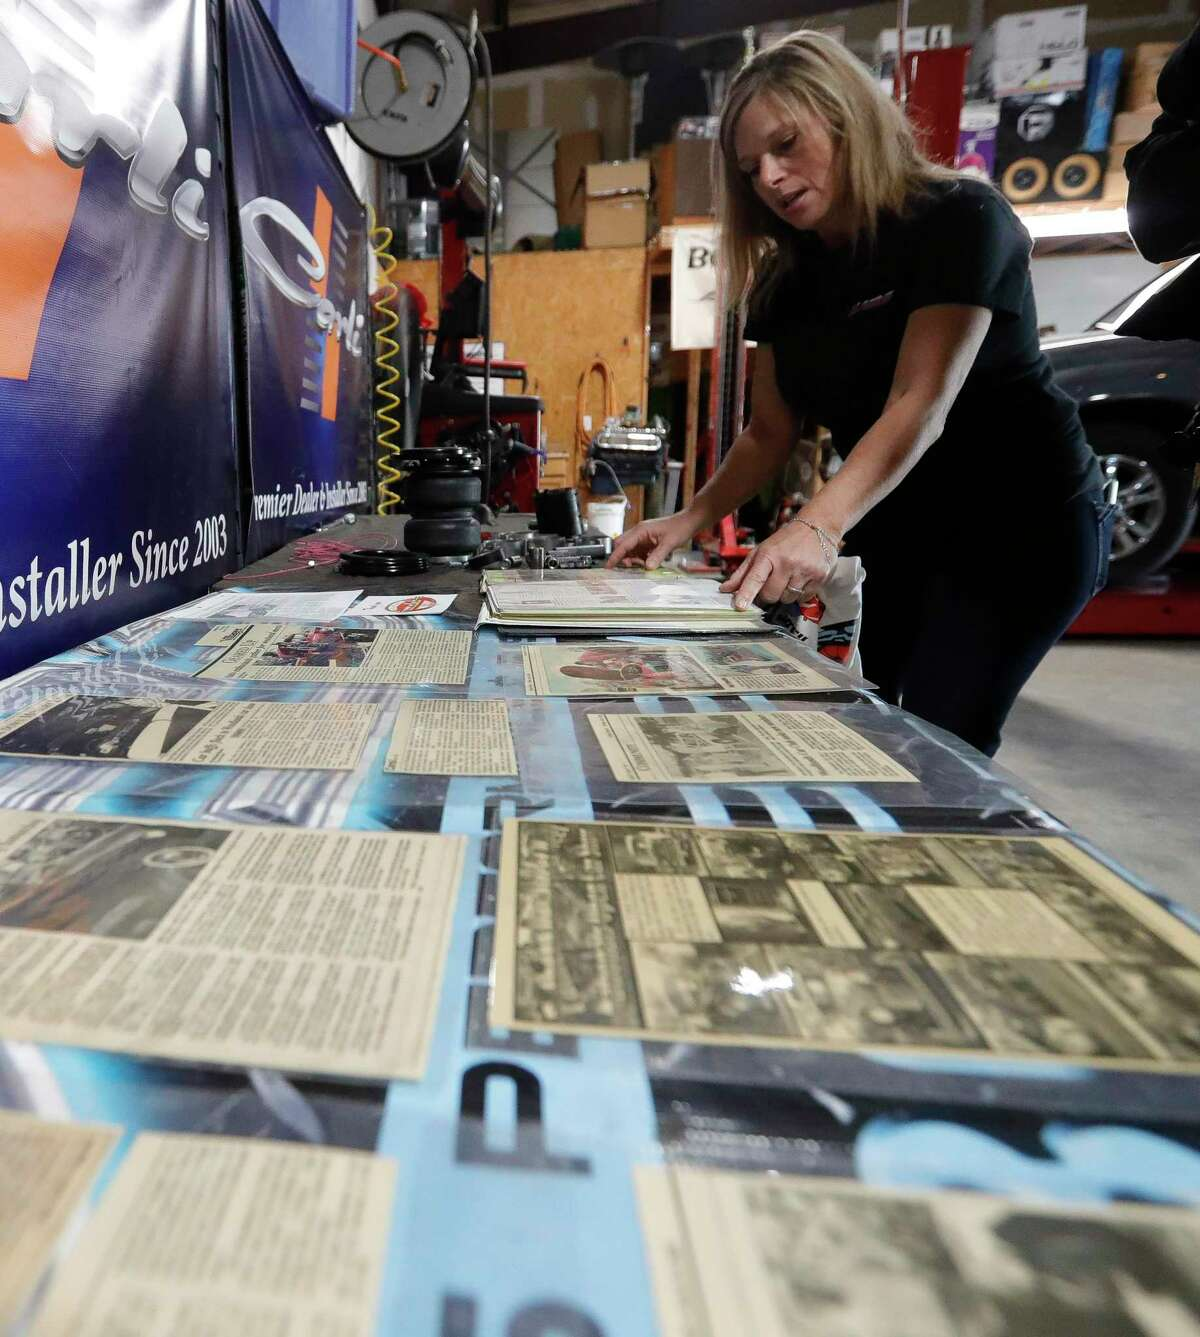 Dana Pritchard goes through articles featuring The Woodlands Car Club at her shop The Woodlands Performance and Suspension, Thursday, April 1, 2021, in Spring. Pritchard is one of the founding members of the club, which is celebrating its 20th anniversary this year.